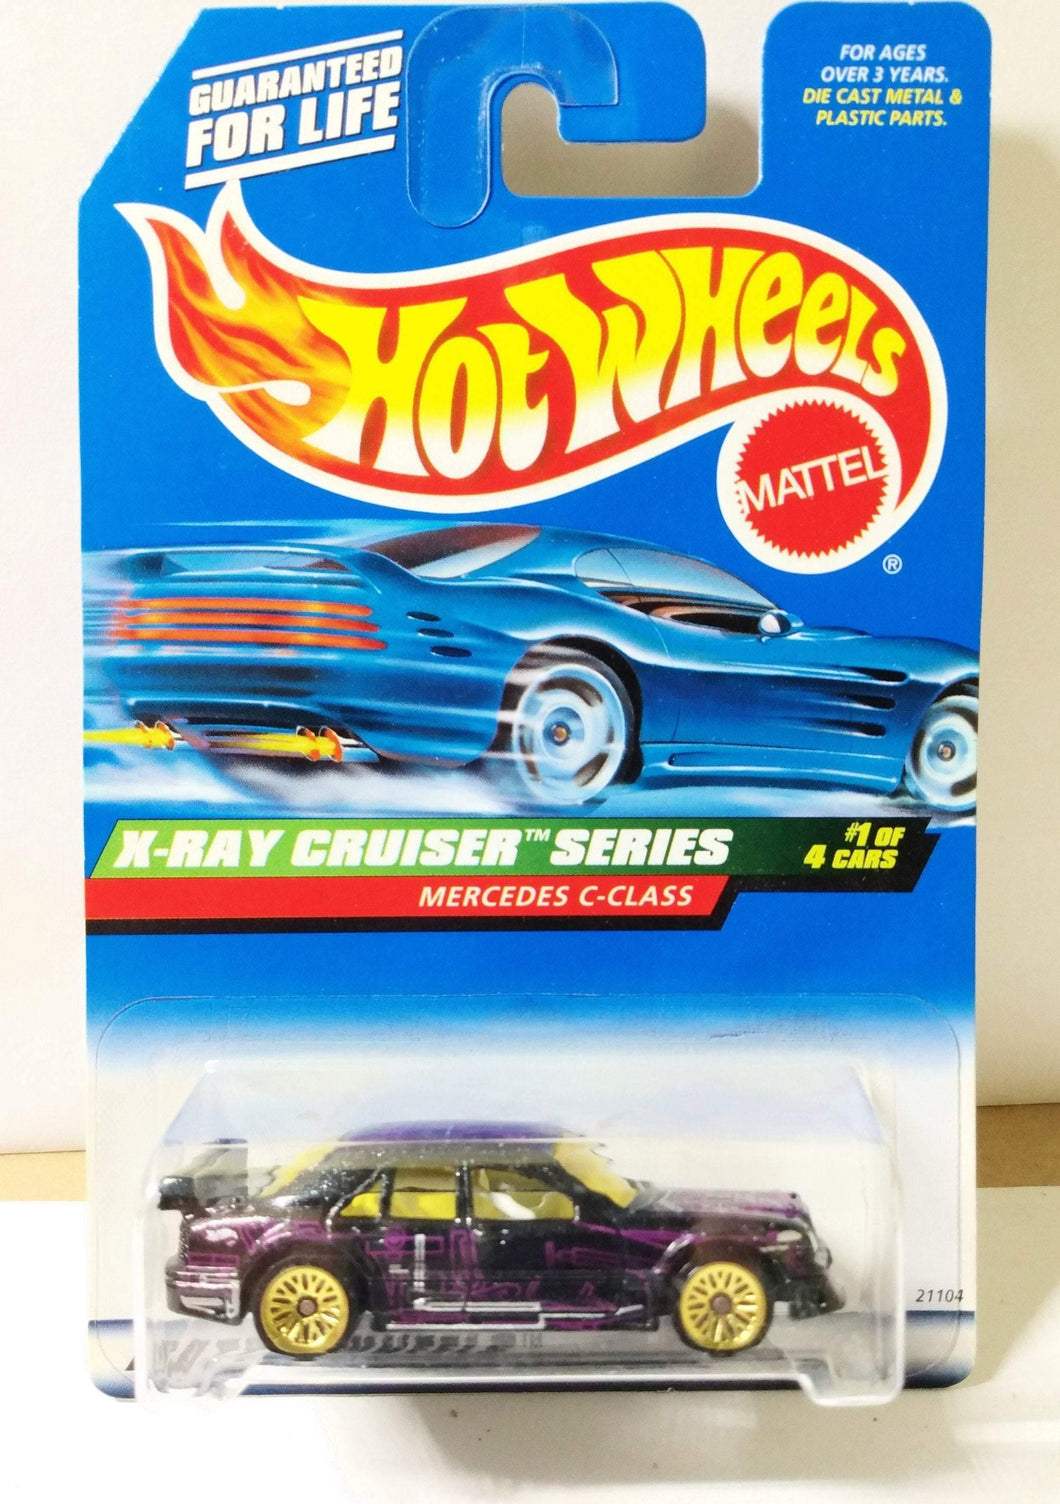 Hot Wheels X-Ray Cruiser Series Mercedes C-Class Collector #945 1998 - TulipStuff